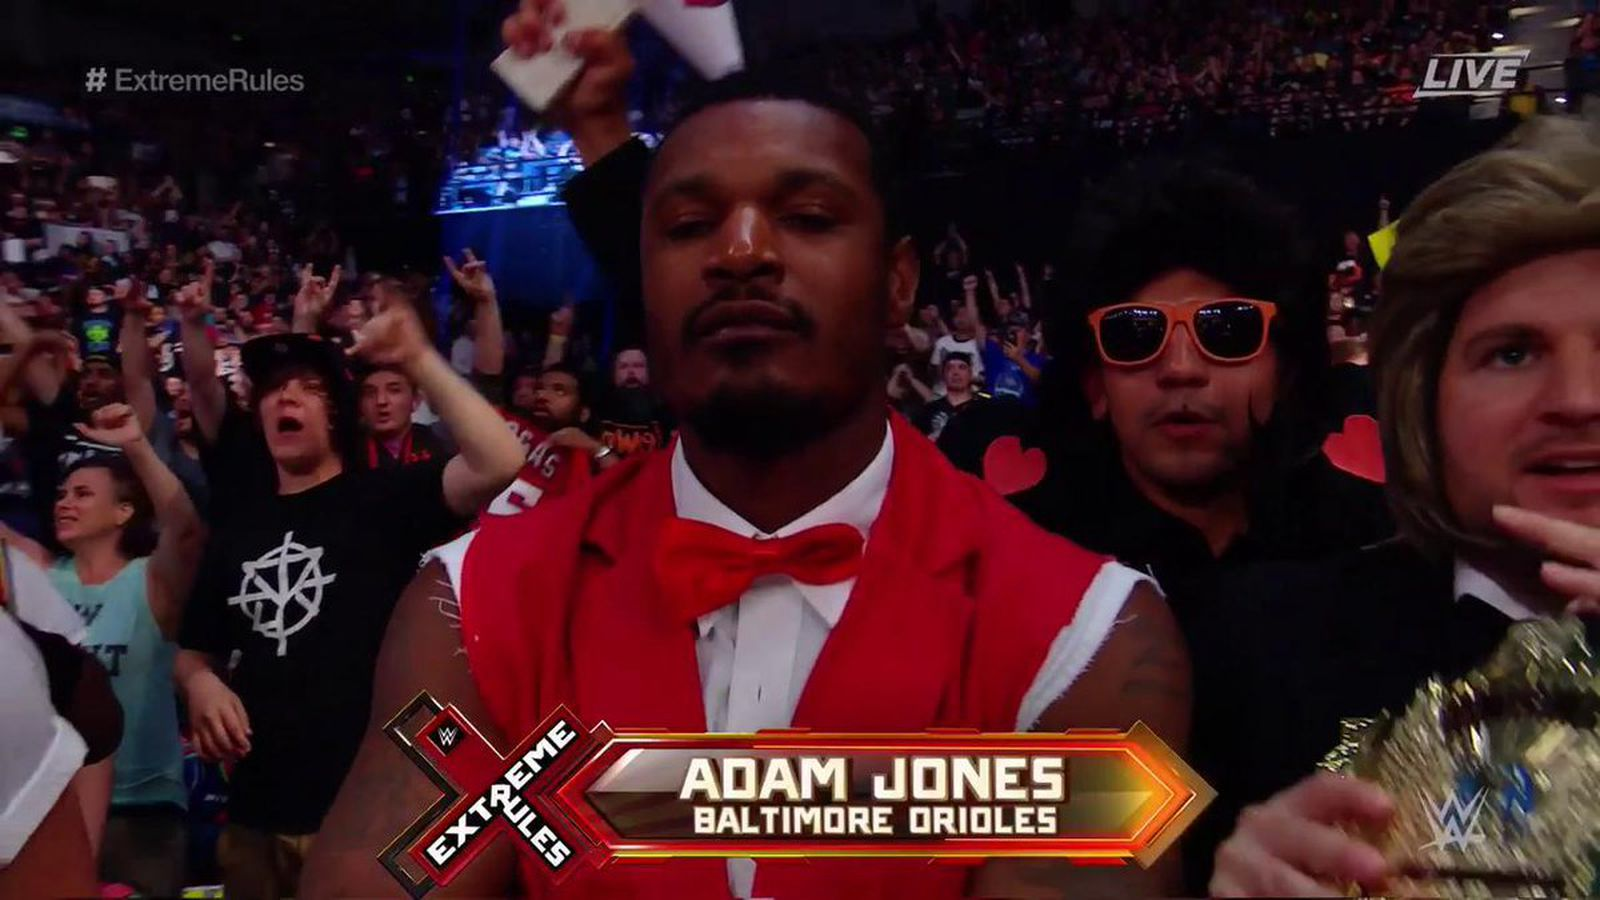 Adam Jones Cosplaying As Virgil Might Be The Best Thing About Extreme Rules